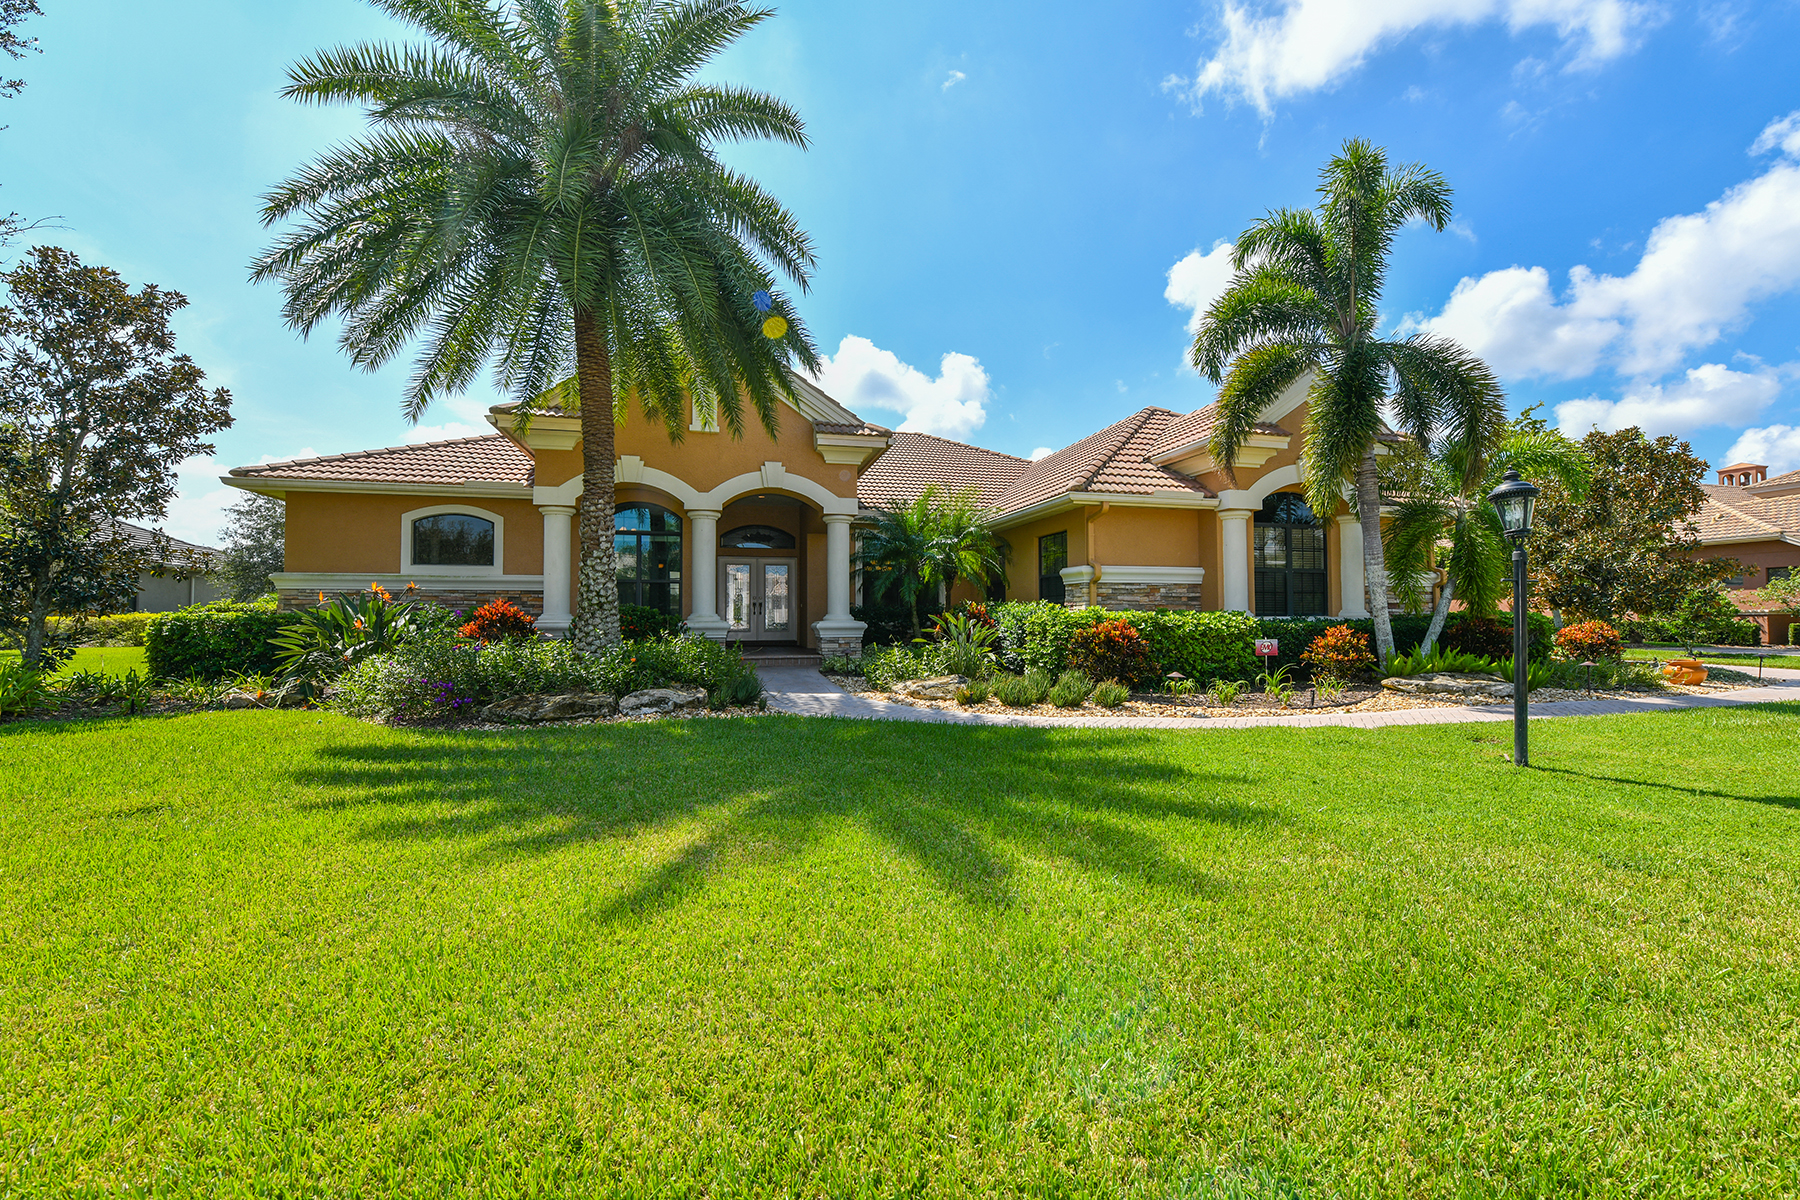 Single Family Home for Sale at PRESERVE AT HERON LAKE 7542 Conservation Ct, Sarasota, Florida, 34241 United States